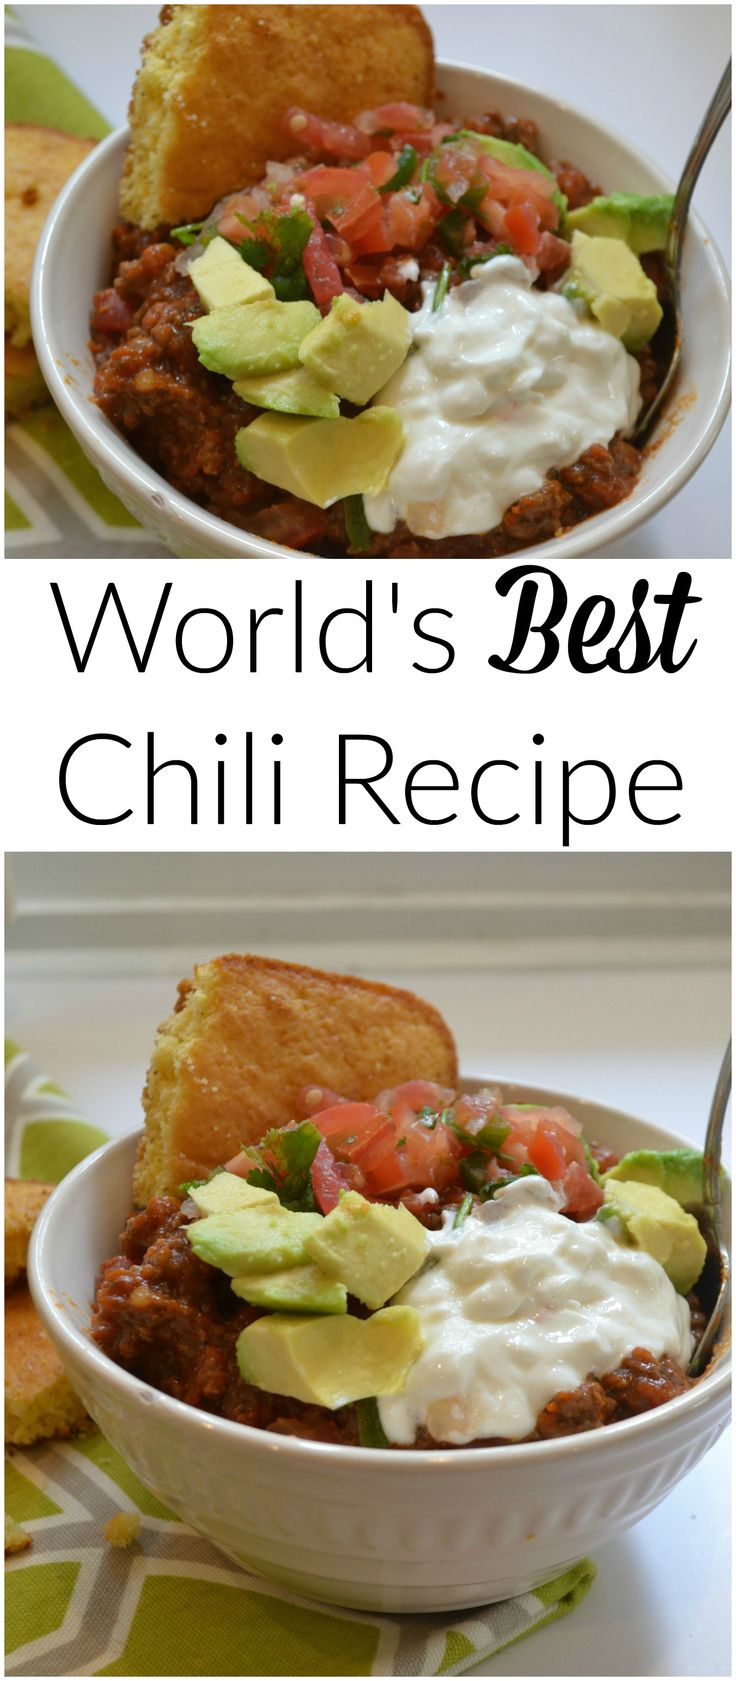 This is hands down the world's best chili recipe. It is great for Whole 30, clean eating, low carb diets, weight watchers and more.  www.momswithoutanswers.com